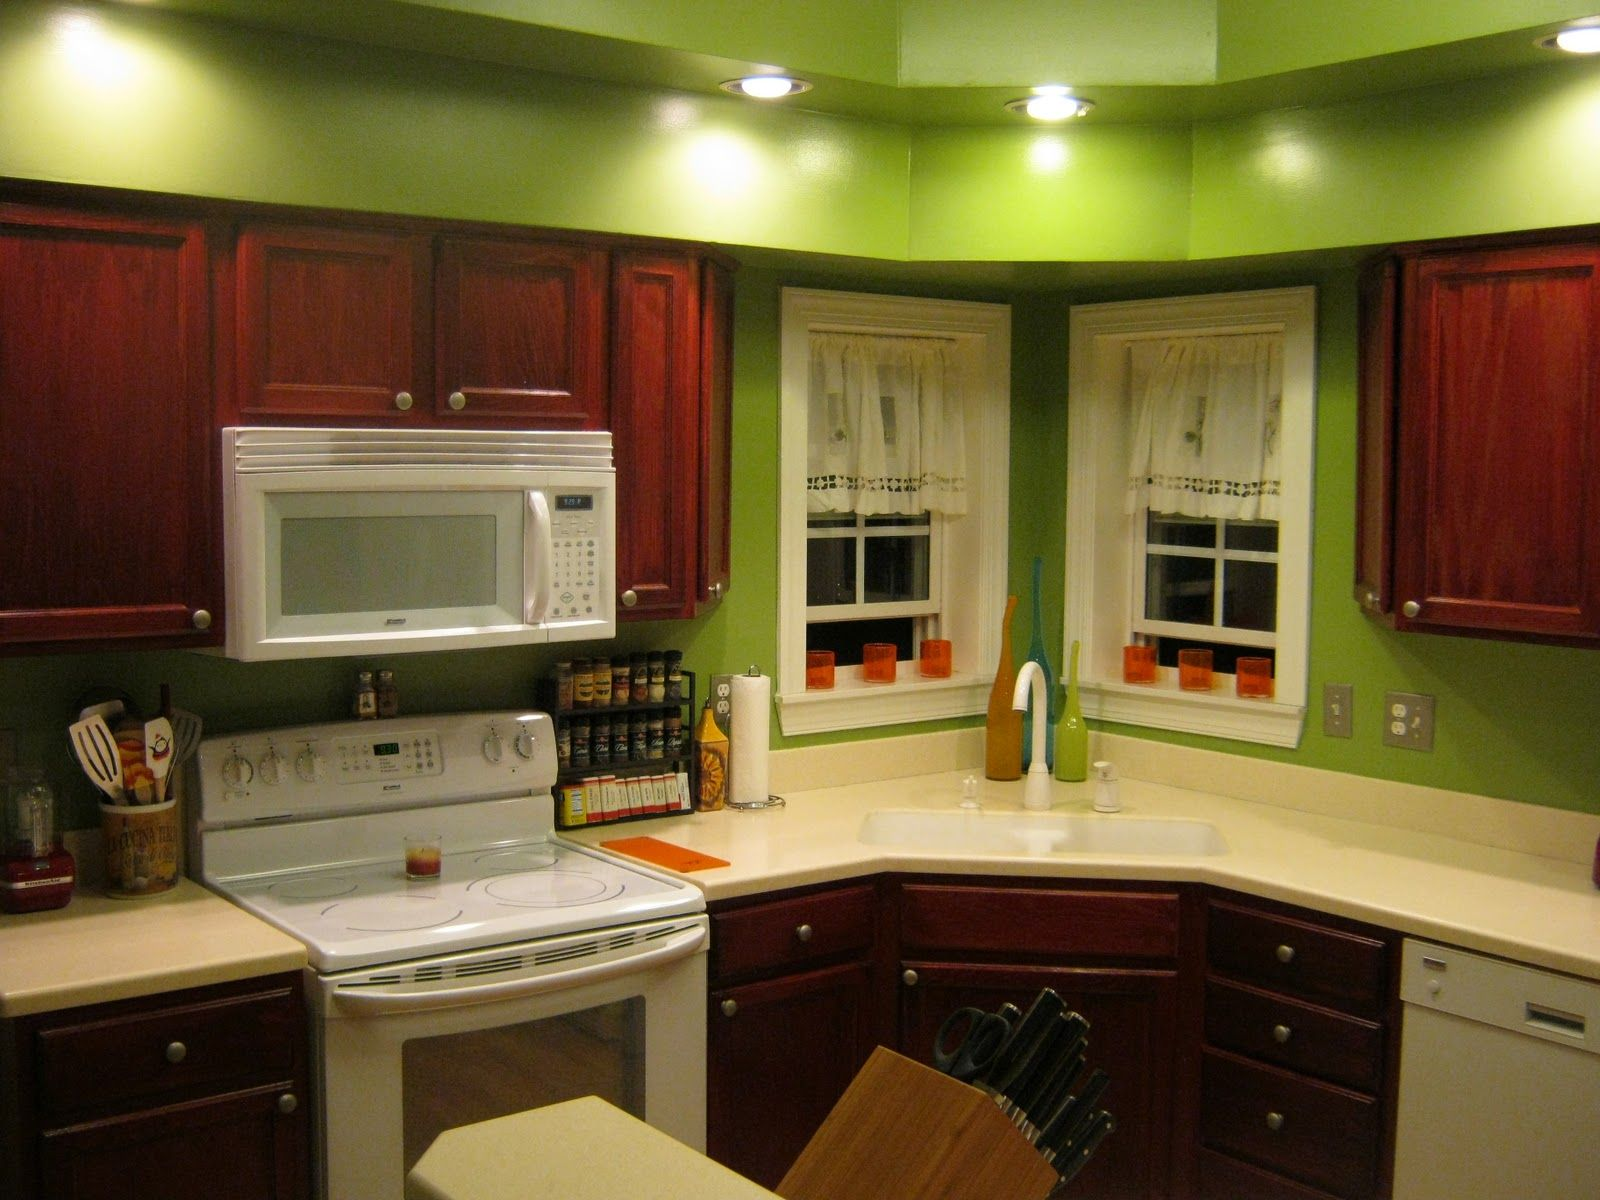 Kitchen Paint Color Ideas most popular kitchen wall color ideas - http://www.1stkitchenideas